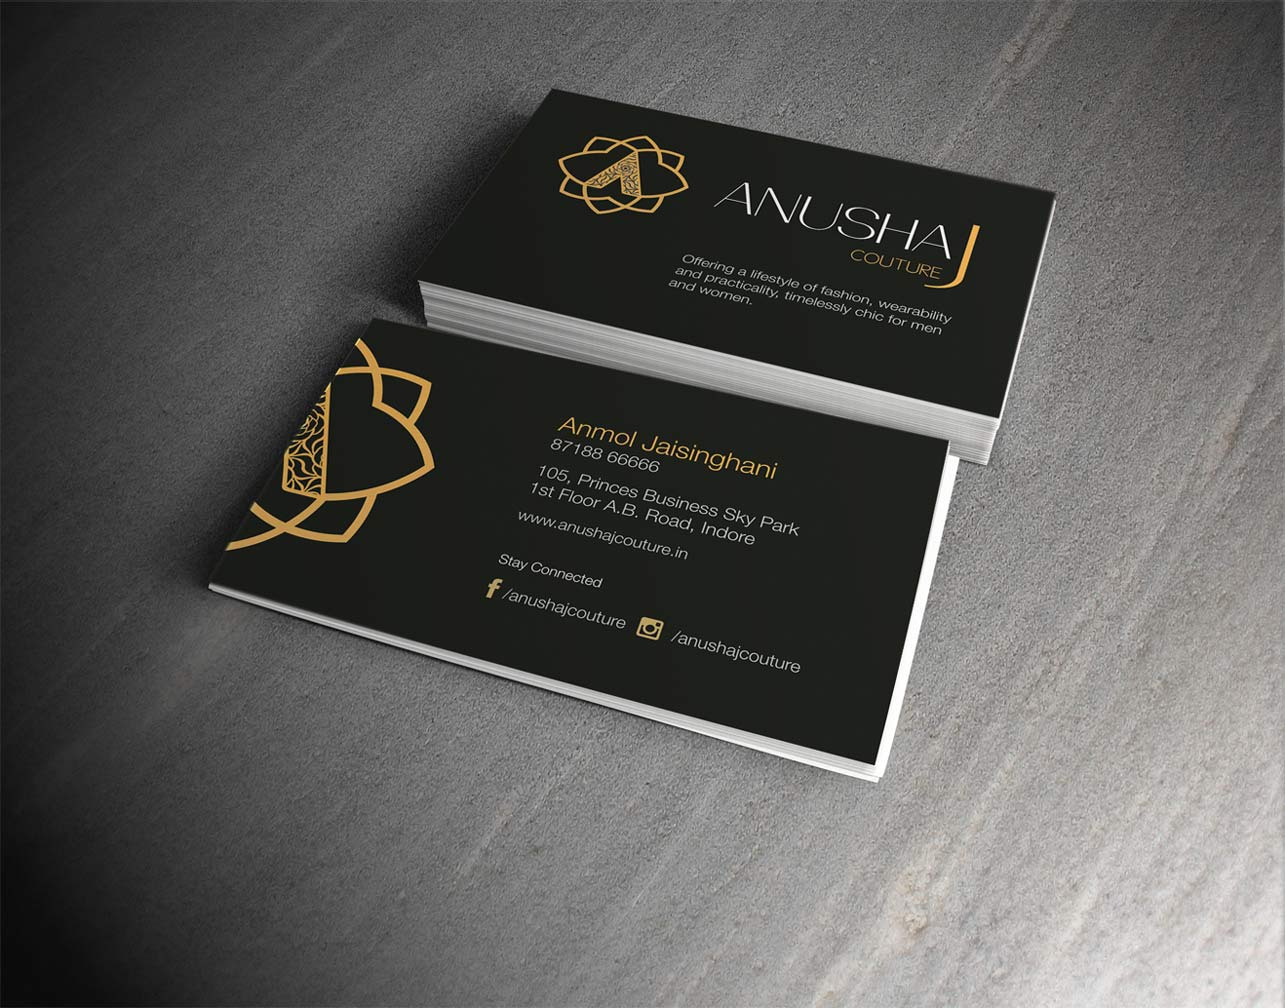 International standard business cards brochures stationery international standard business cards brochures stationery printing services in mumbai and indore 8prints reheart Gallery